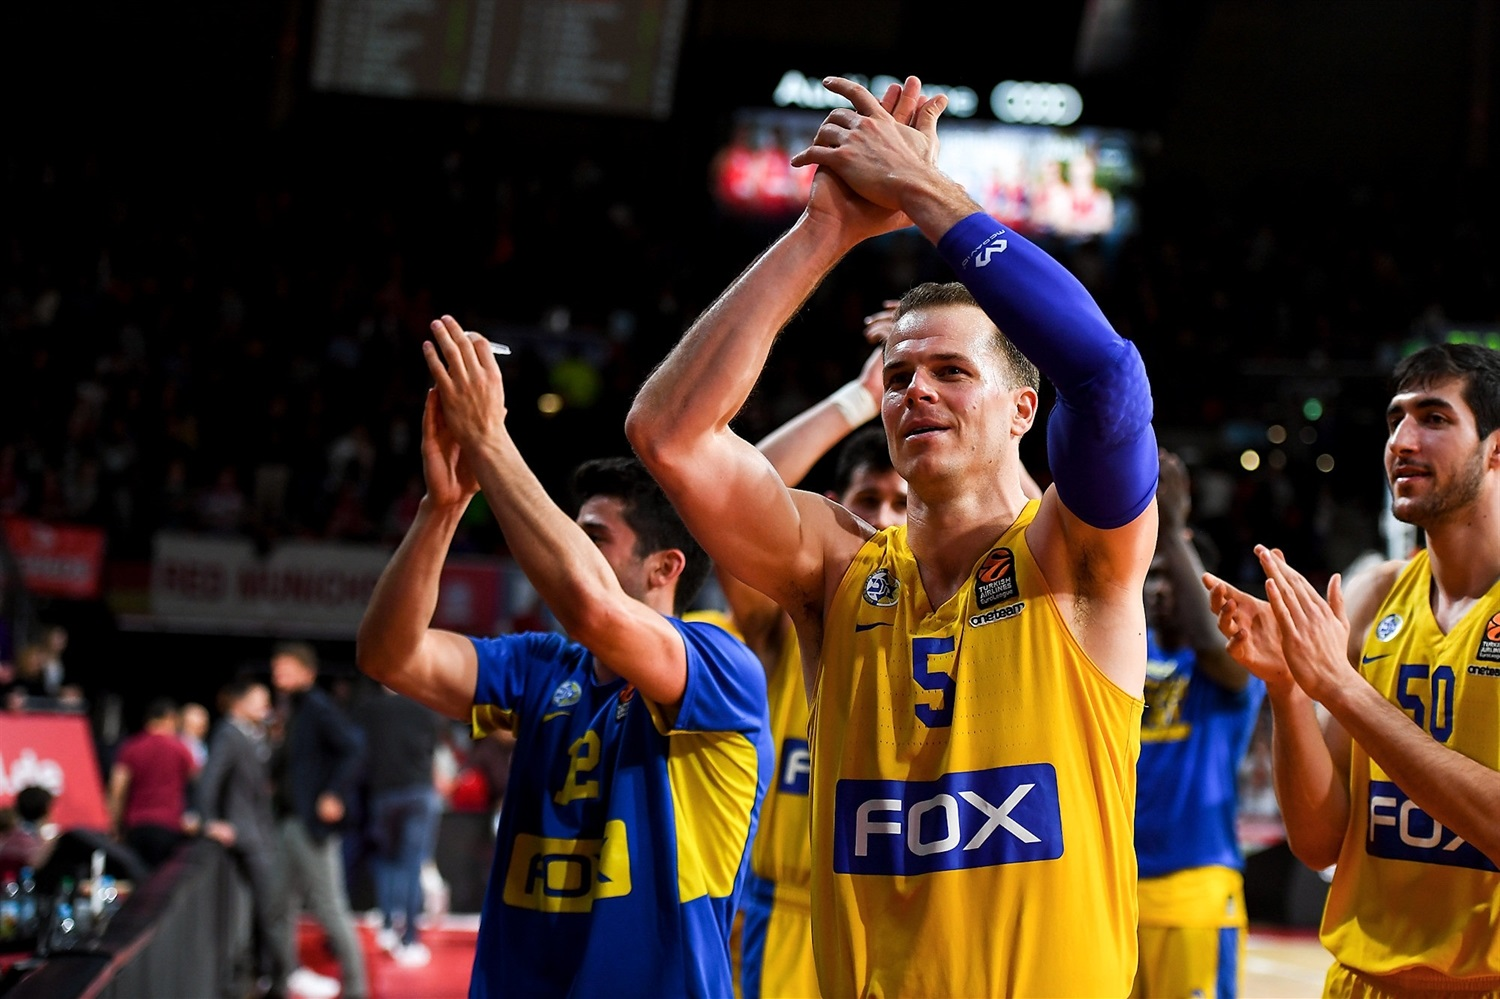 Michael Roll celebrates - Maccabi FOX Tel Aviv - EB18